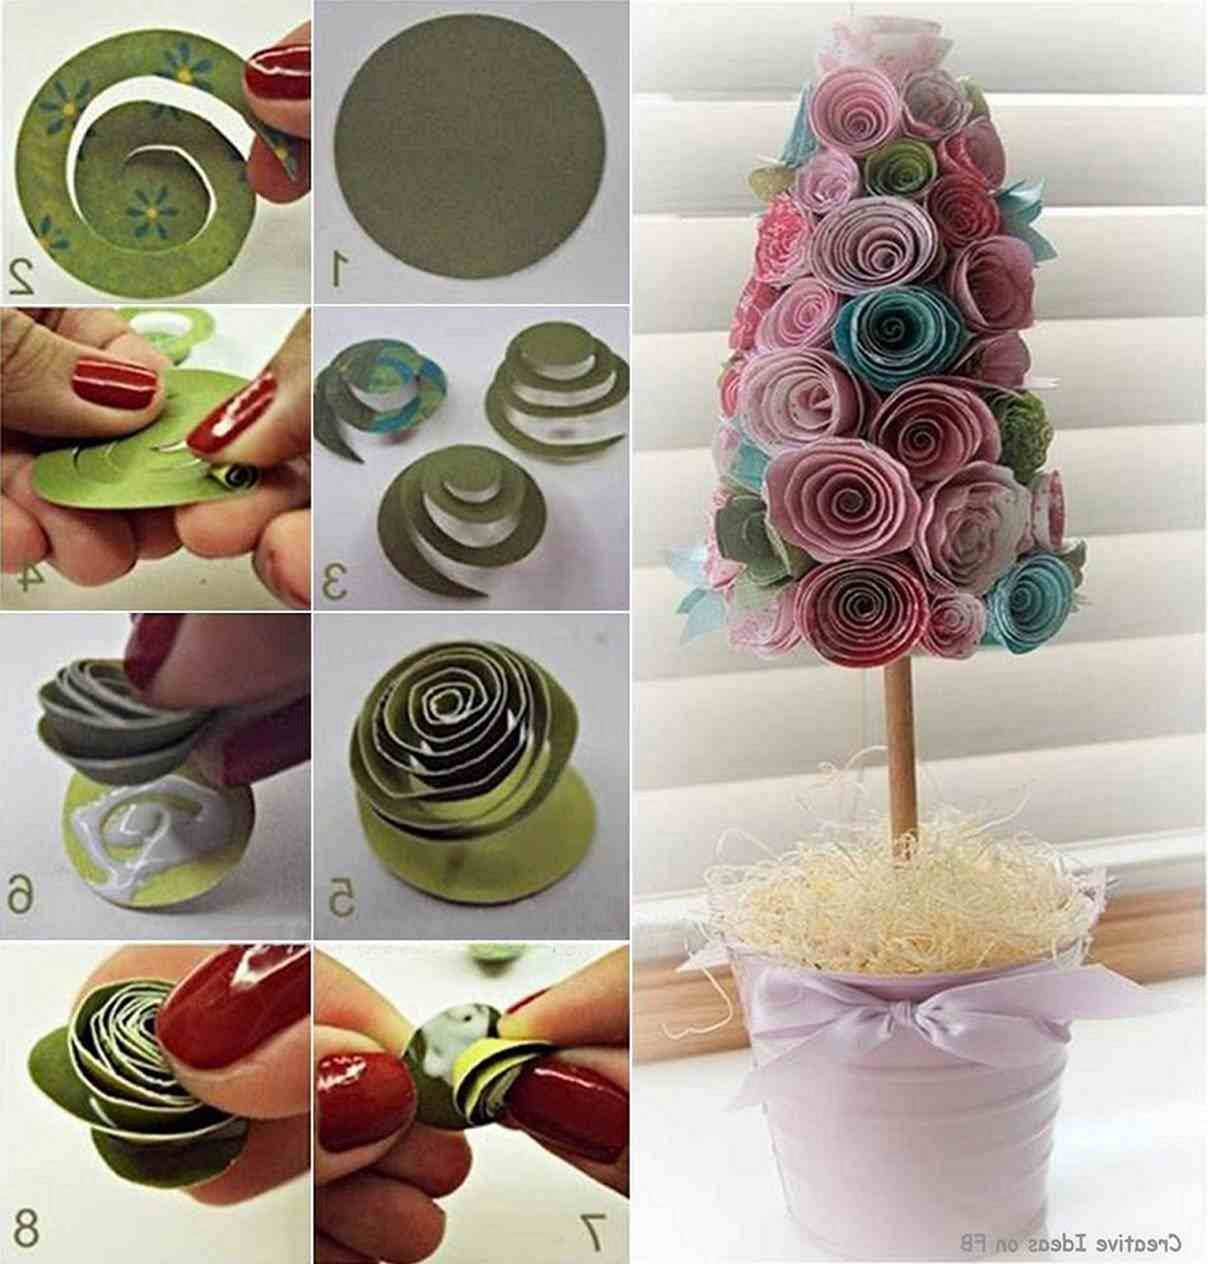 45 Easy Diy Home Decoration Ideas On A Budget Diy And Crafts